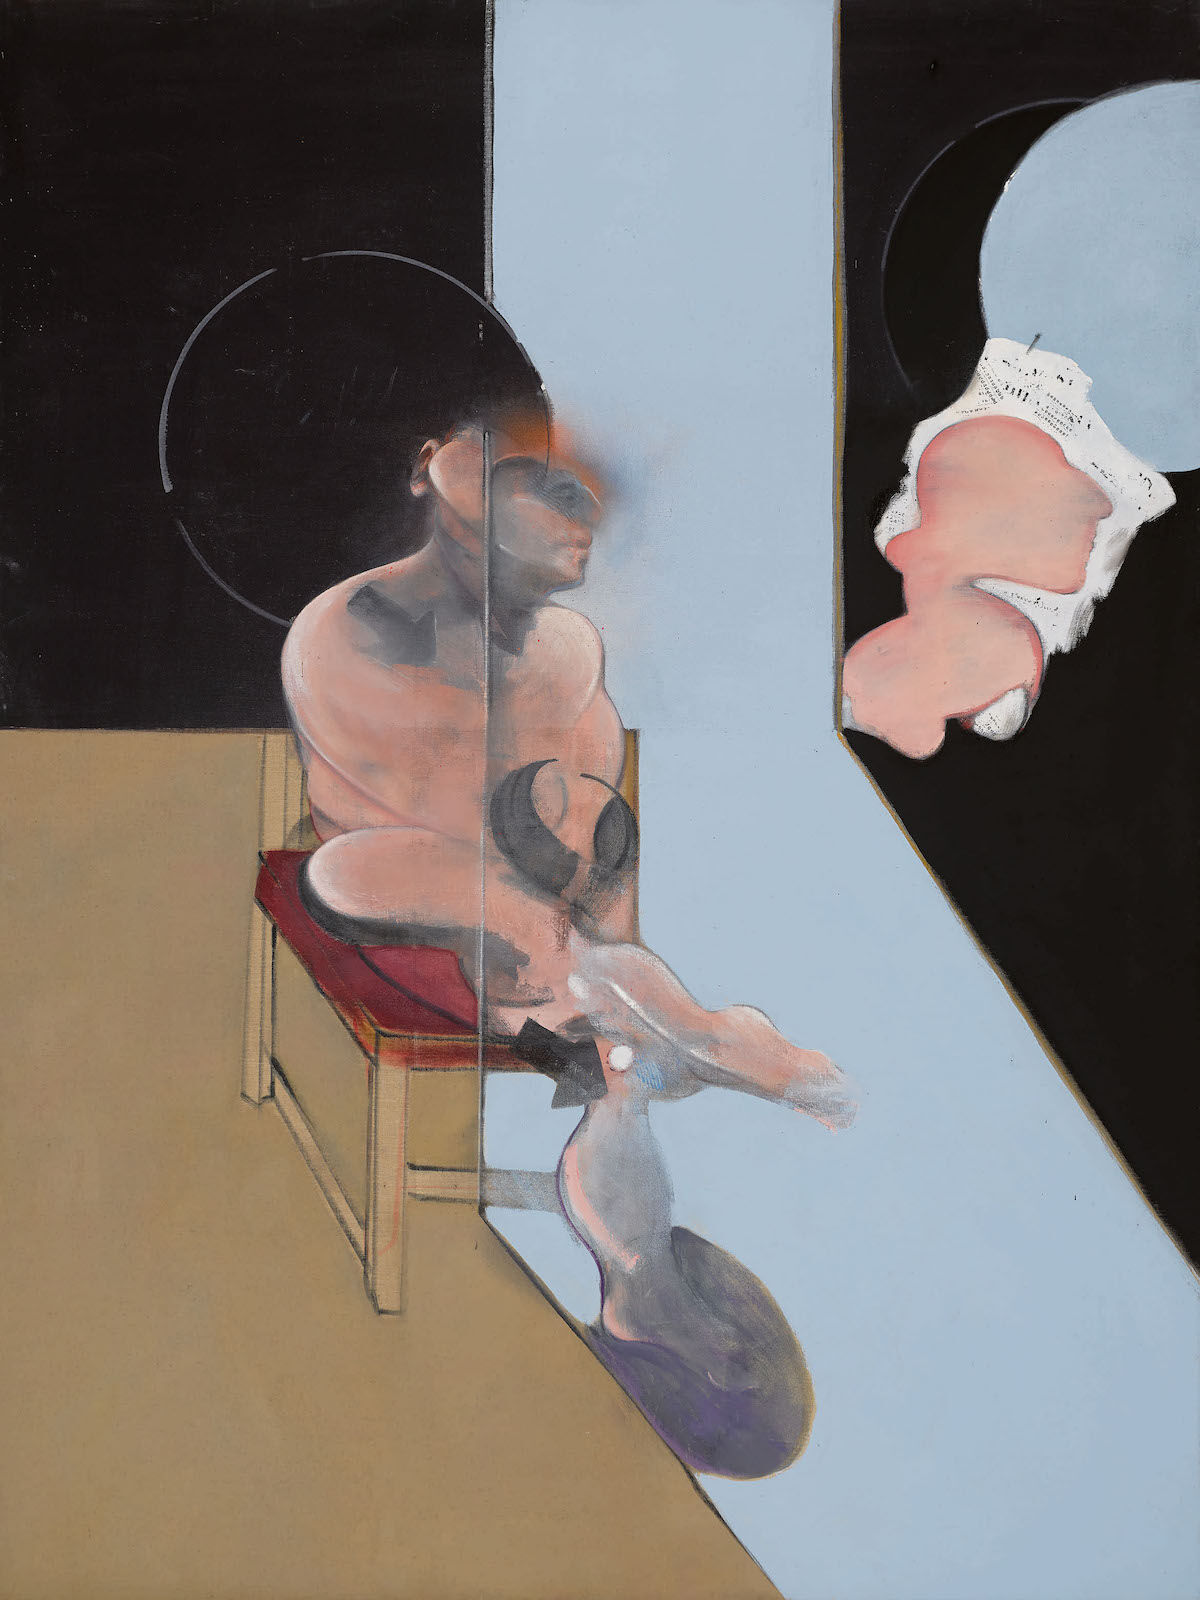 Francis Bacon, Study for Portrait, 1981, oil and dry transfer lettering on canvas. Est. $12 million–$18 million. Courtesy Sotheby's.